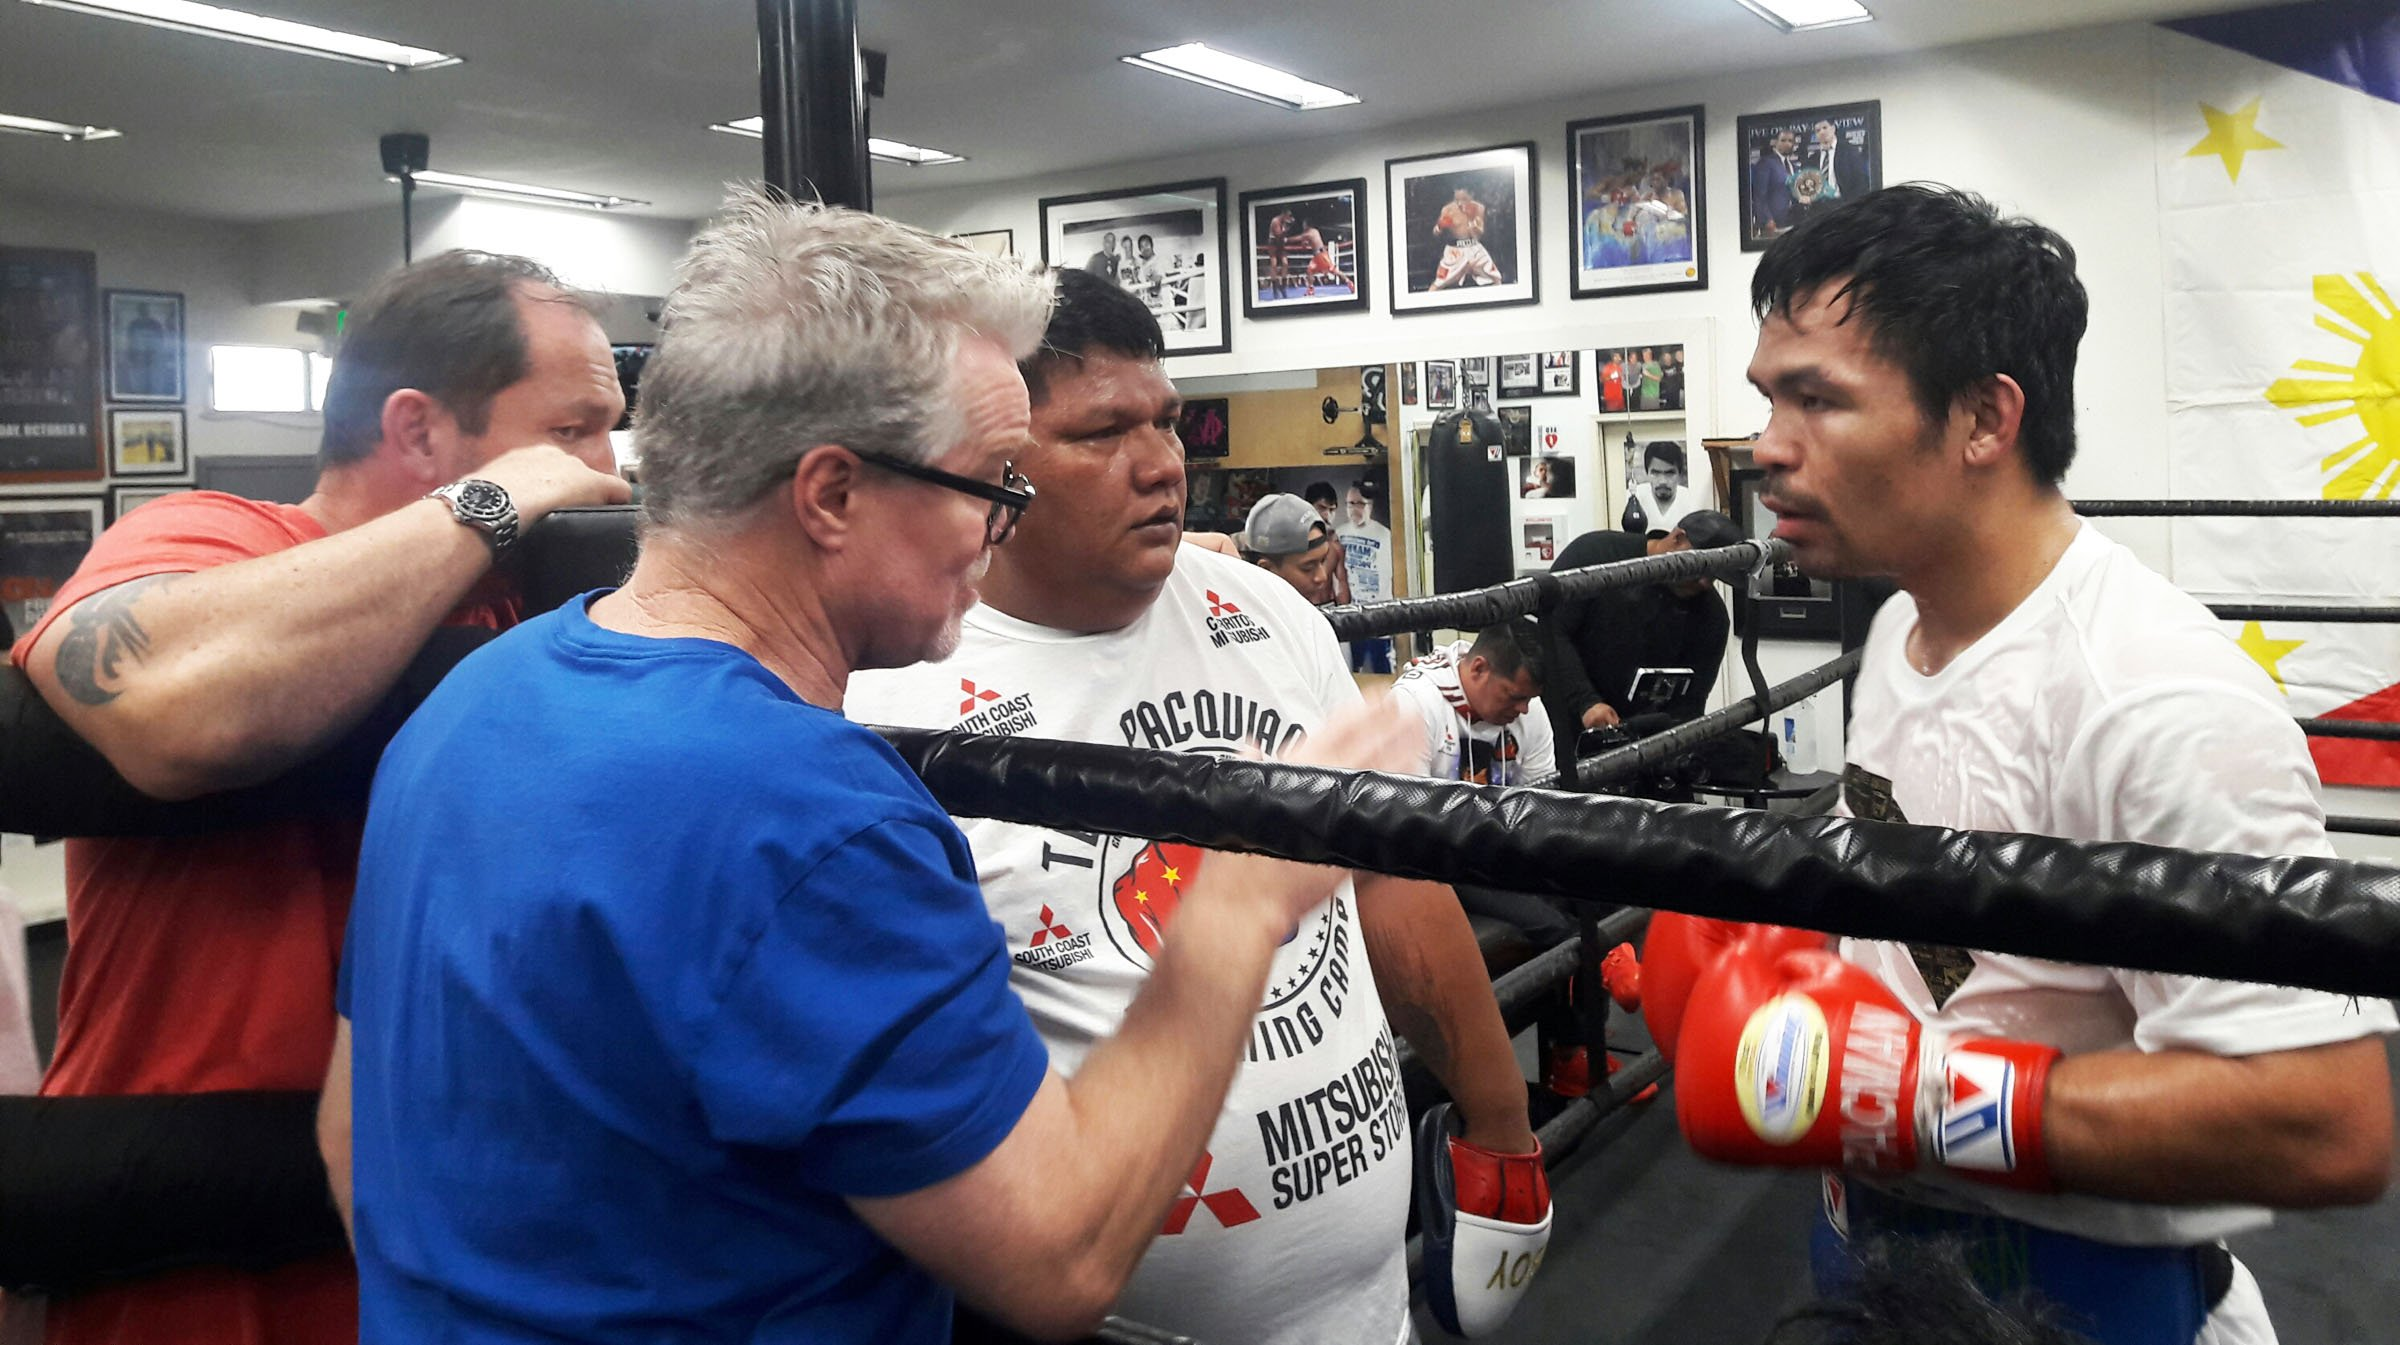 Legendary Boxing Buddies Reunited At Last - Freddie Roach and Manny Pacquiao